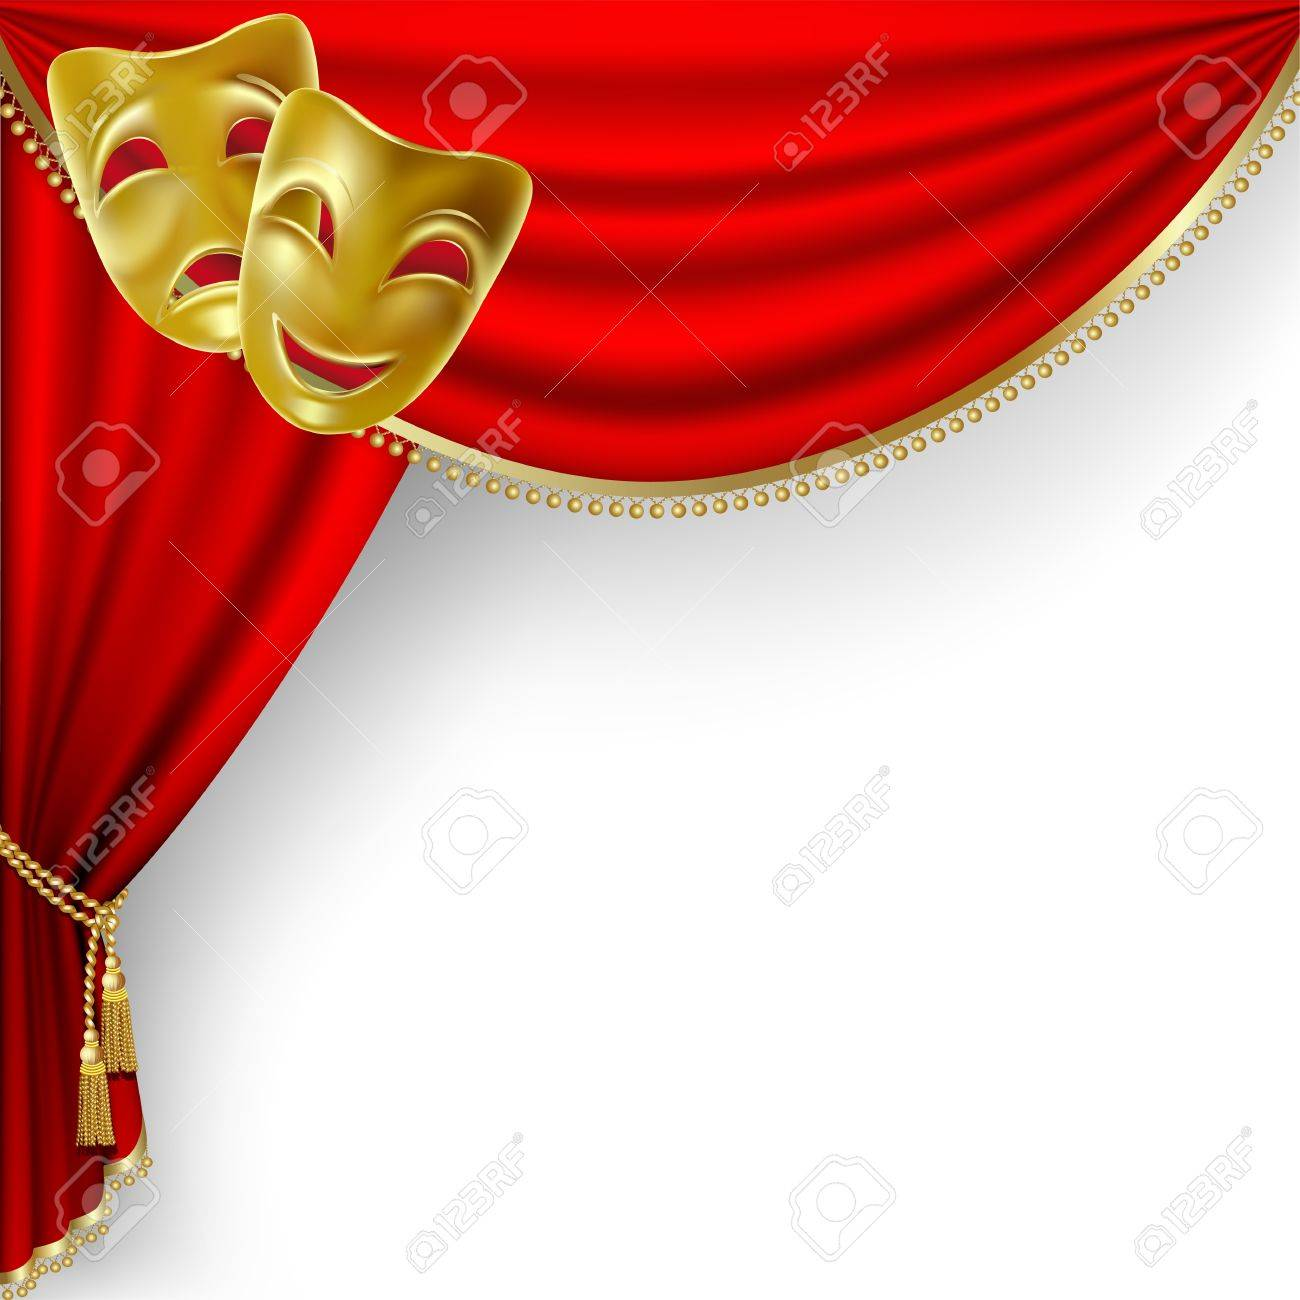 Theatre Curtains And Masks - Theater stage with red curtain and masks stock vector 11218745